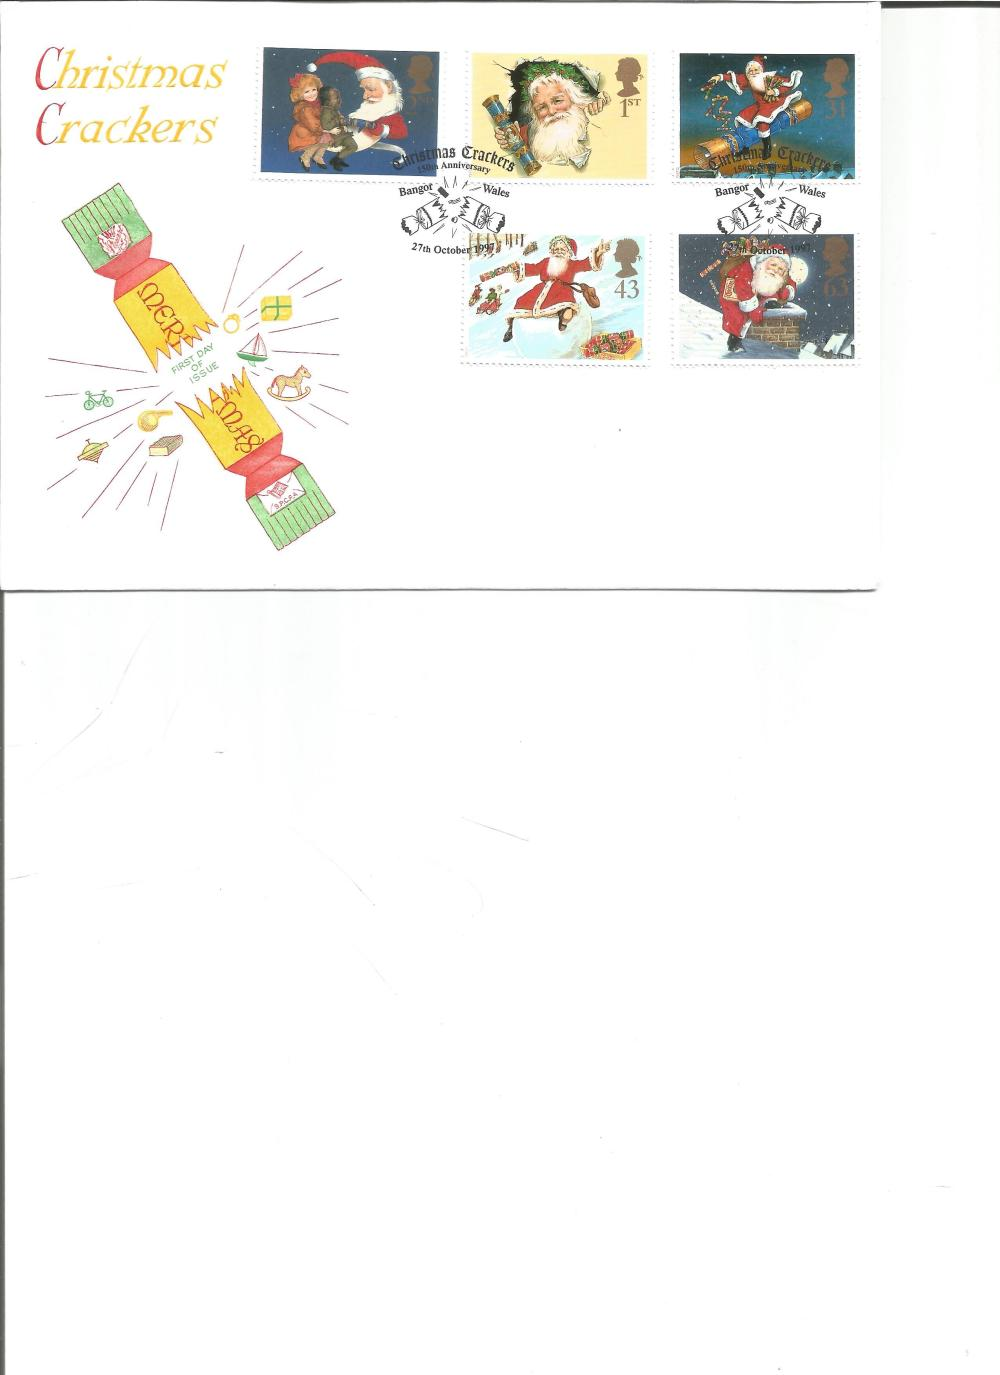 FDC Christmas Crackers c/w set of five commemorative stamps PM Christmas Crackers 150th Anniversary,